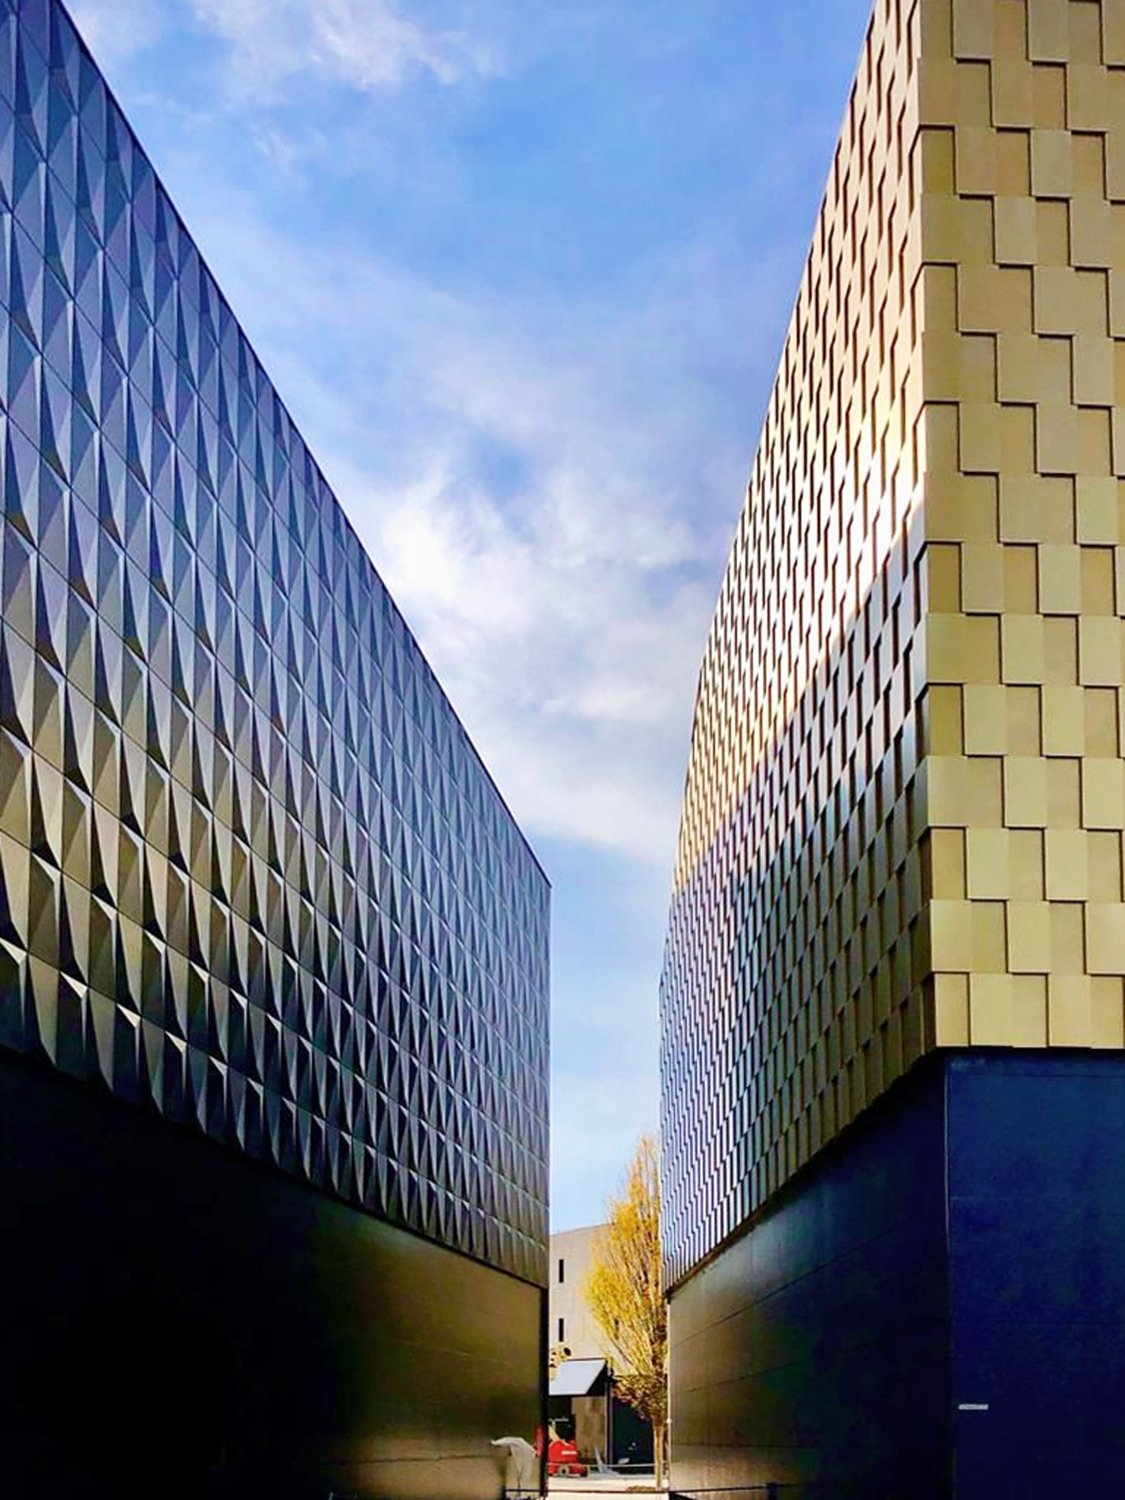 Different Materials: each differentiated through perforations, reliefs, and multiple patterns enriching the overall architectural language © One Works